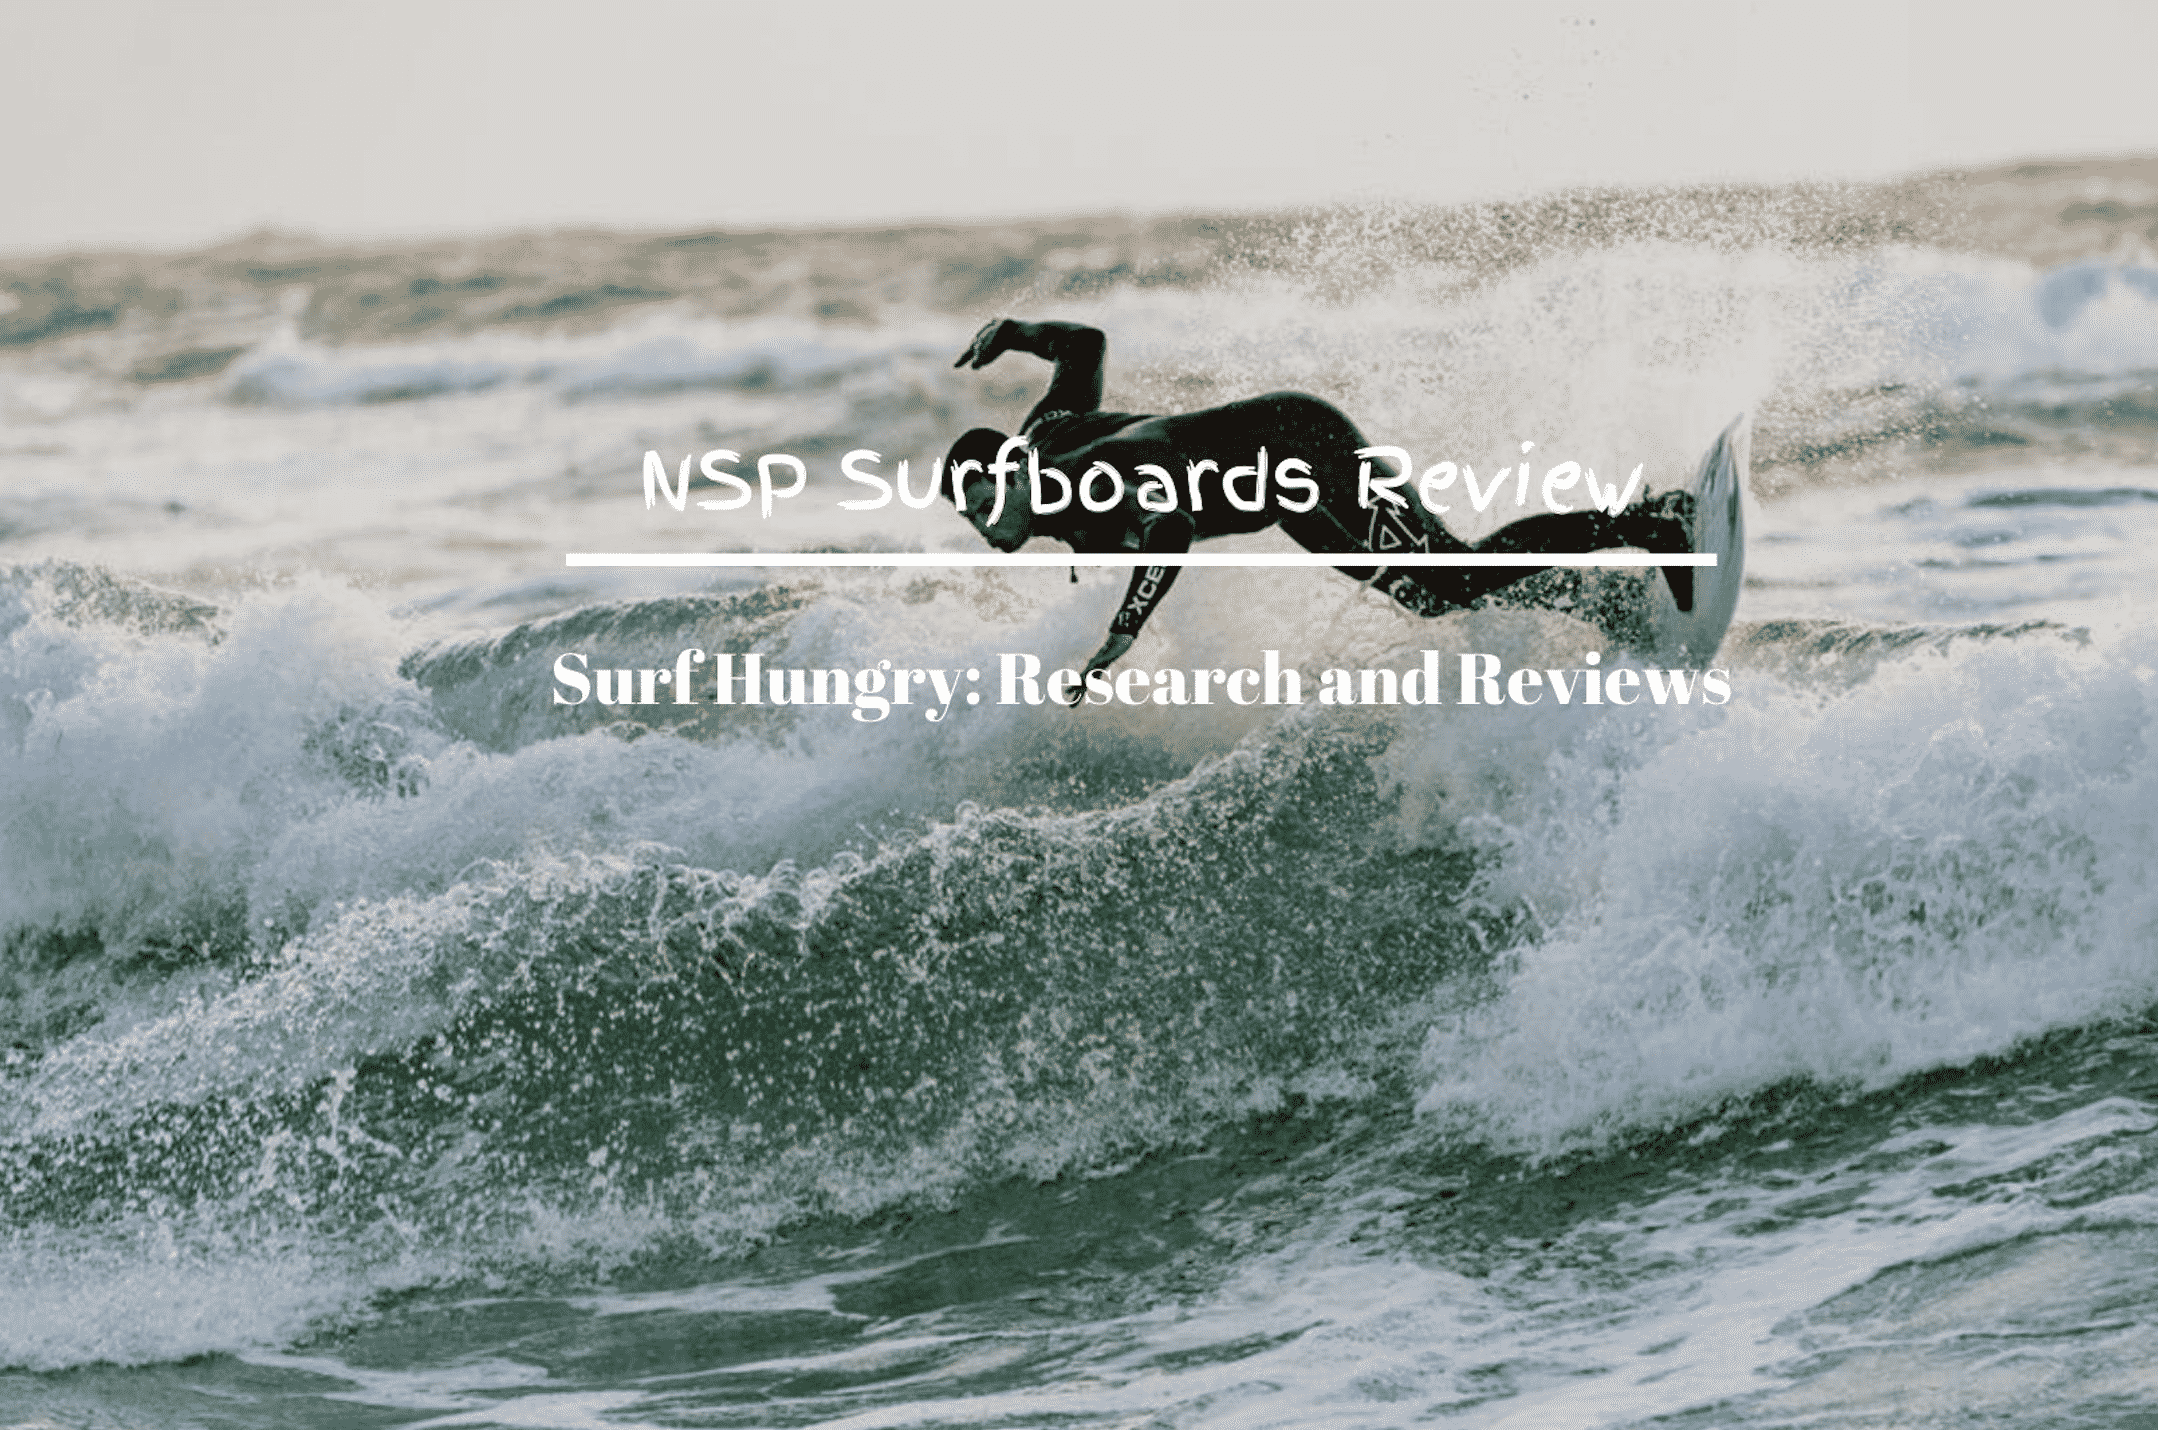 NSP Surfboards Review